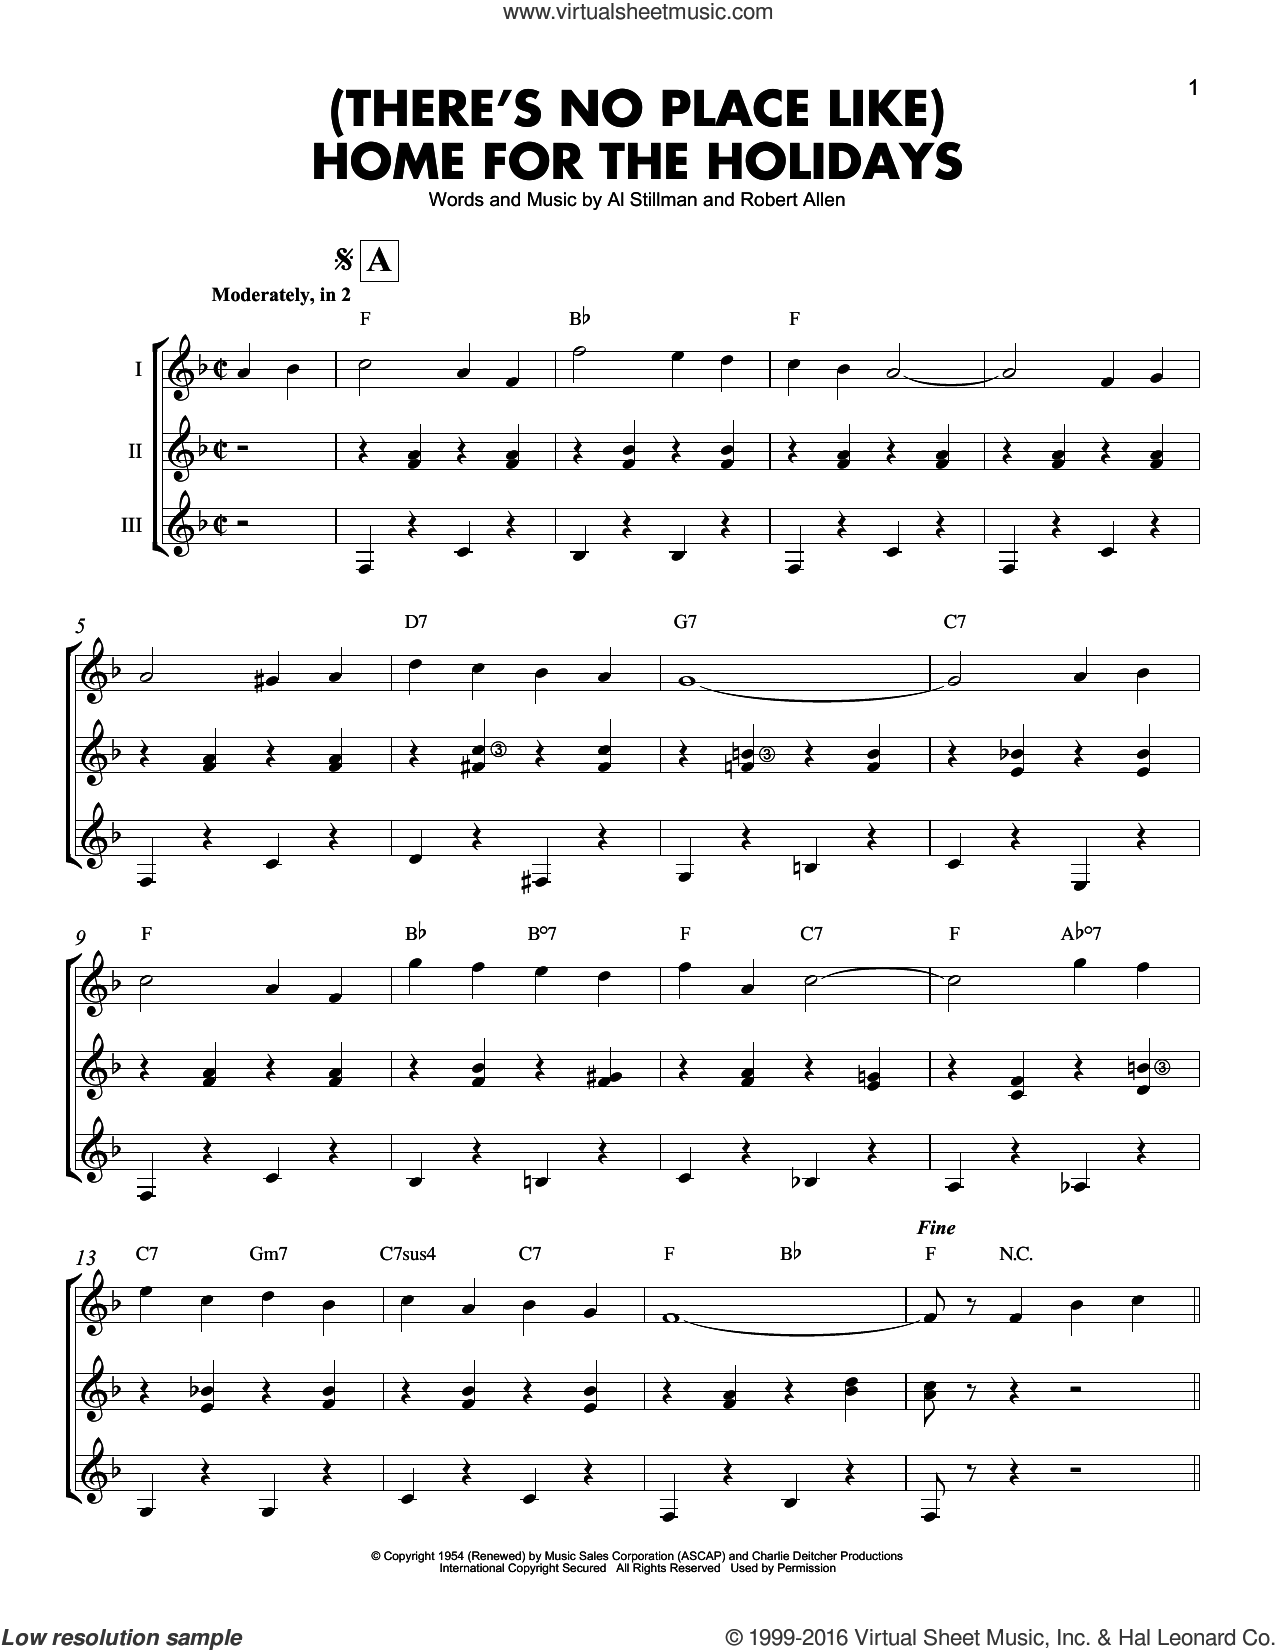 (There's No Place Like) Home For The Holidays sheet music for guitar ensemble by Perry Como, Al Stillman and Robert Allen, intermediate skill level